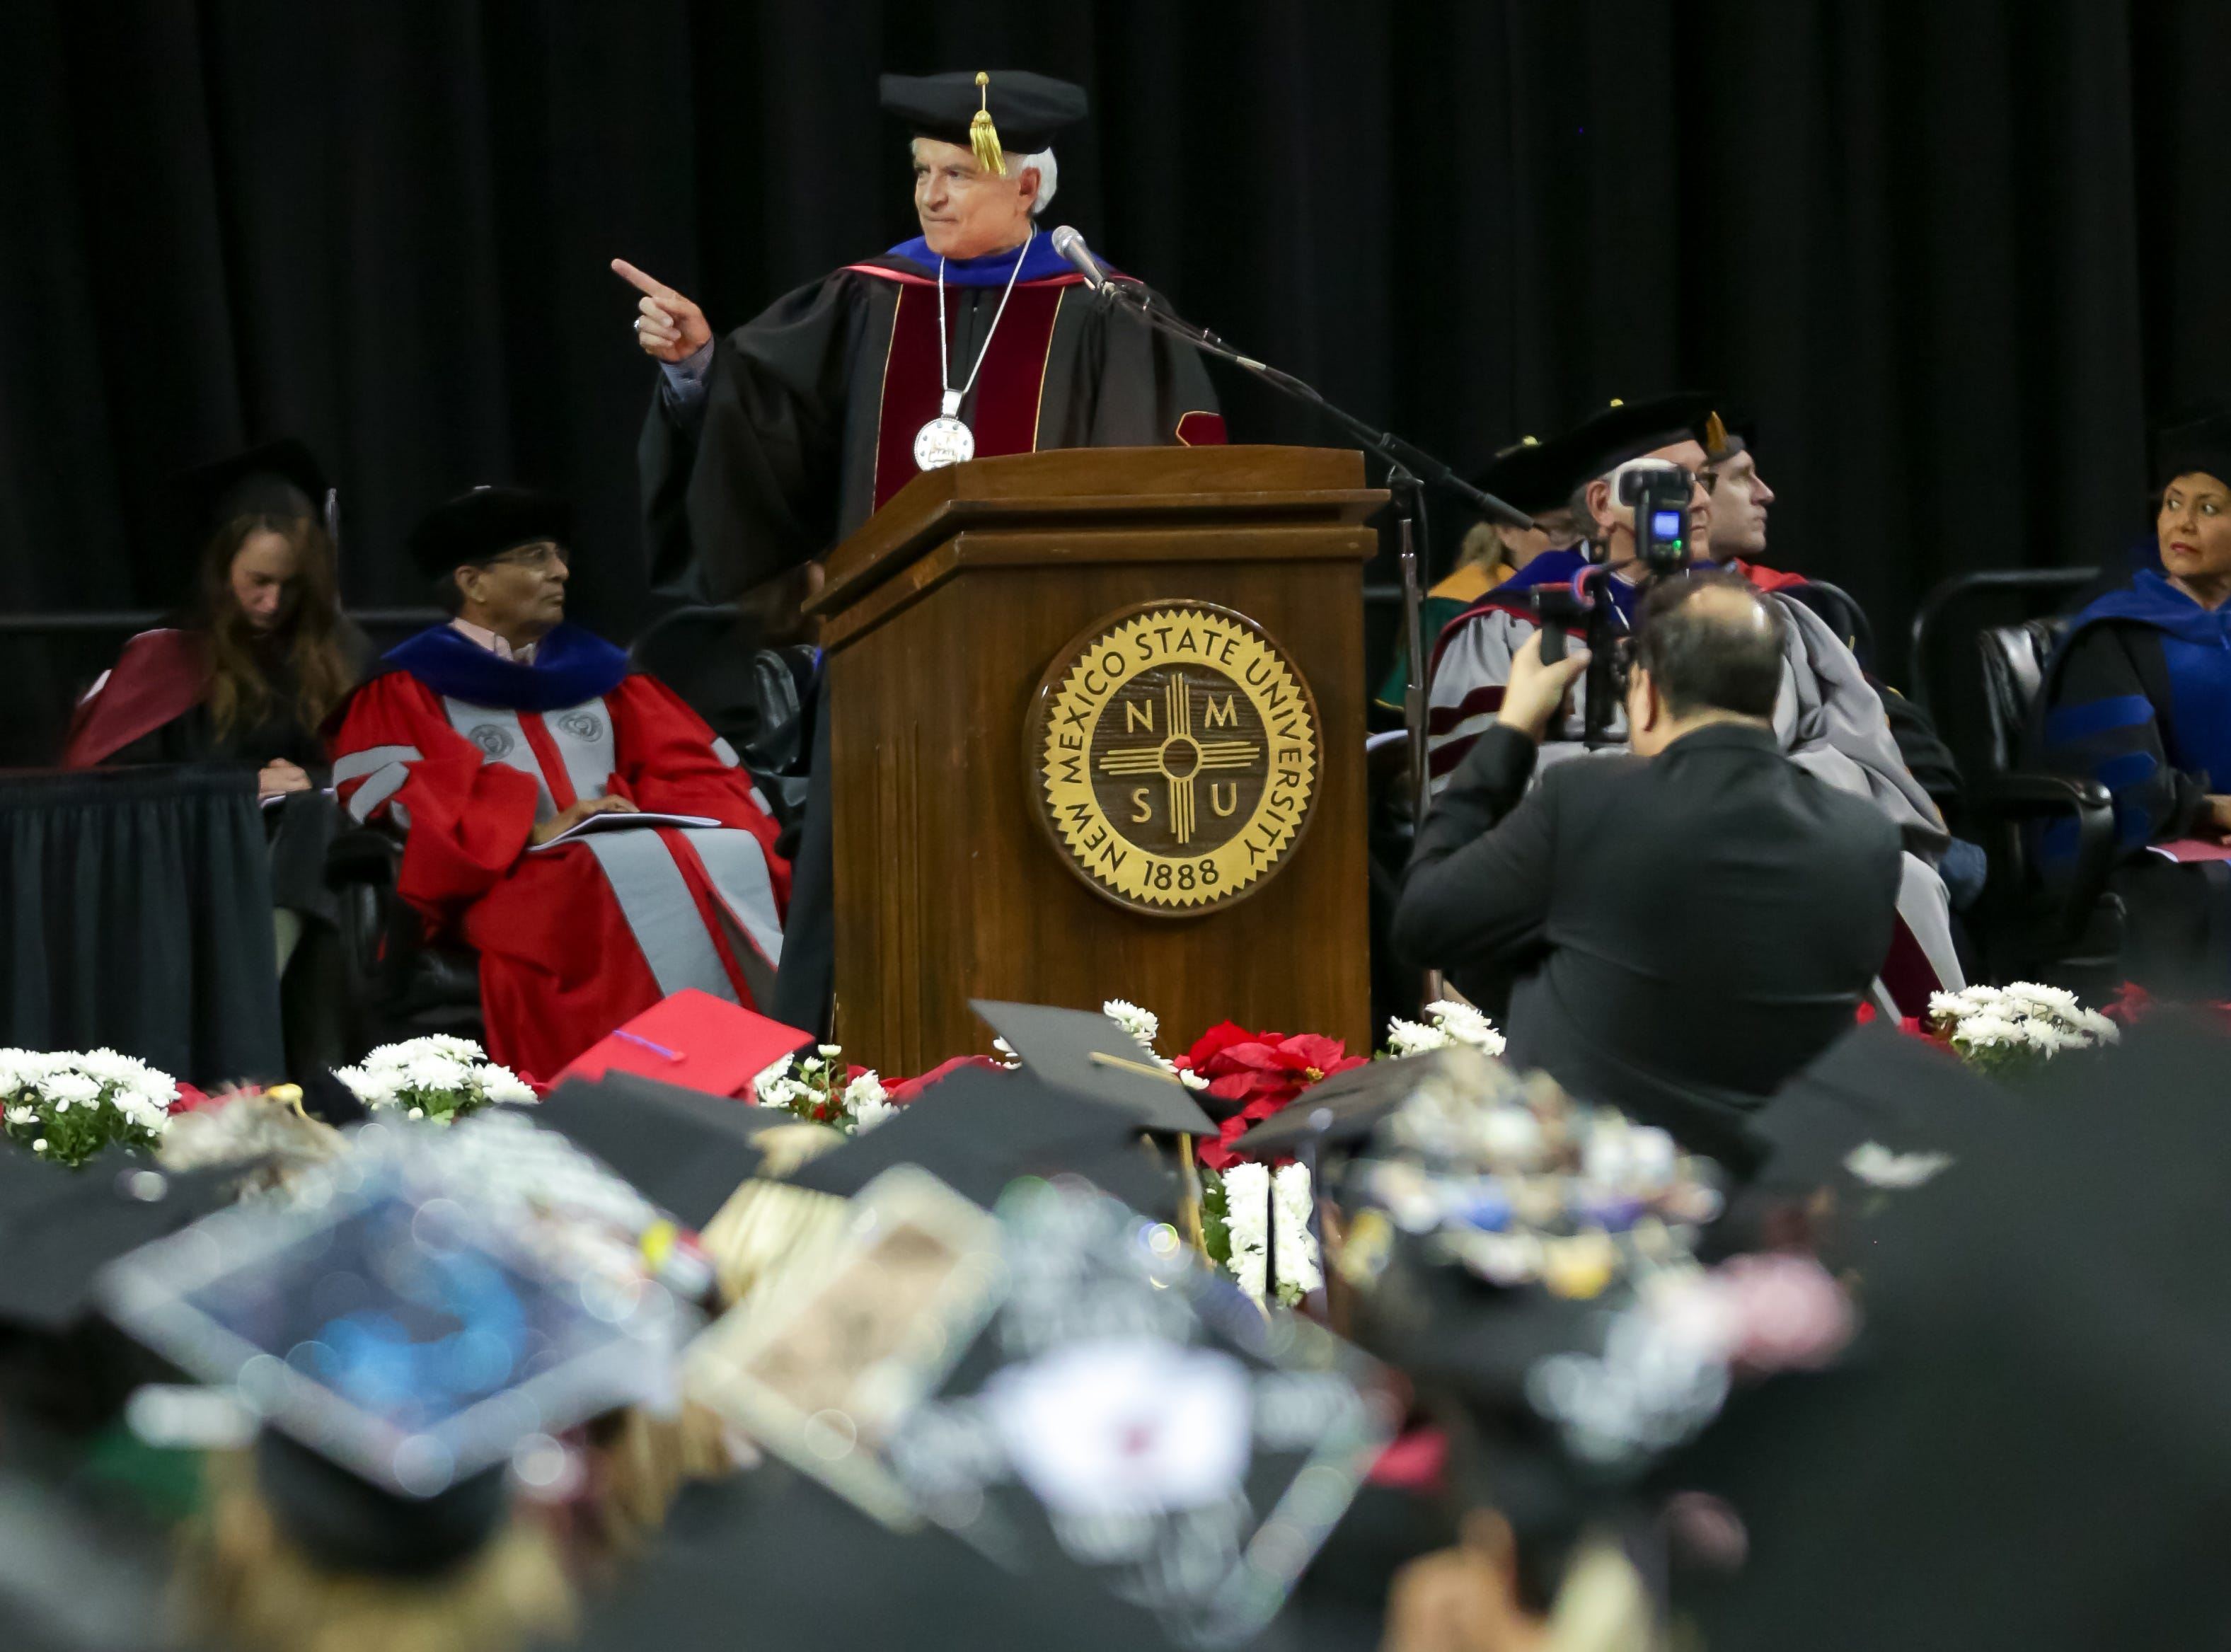 NMSU Chancellor Dan Arvizu speaks at the start of NMSU commencement ceremony on Saturday, Dec. 8, 2018 at the Pan American Center.